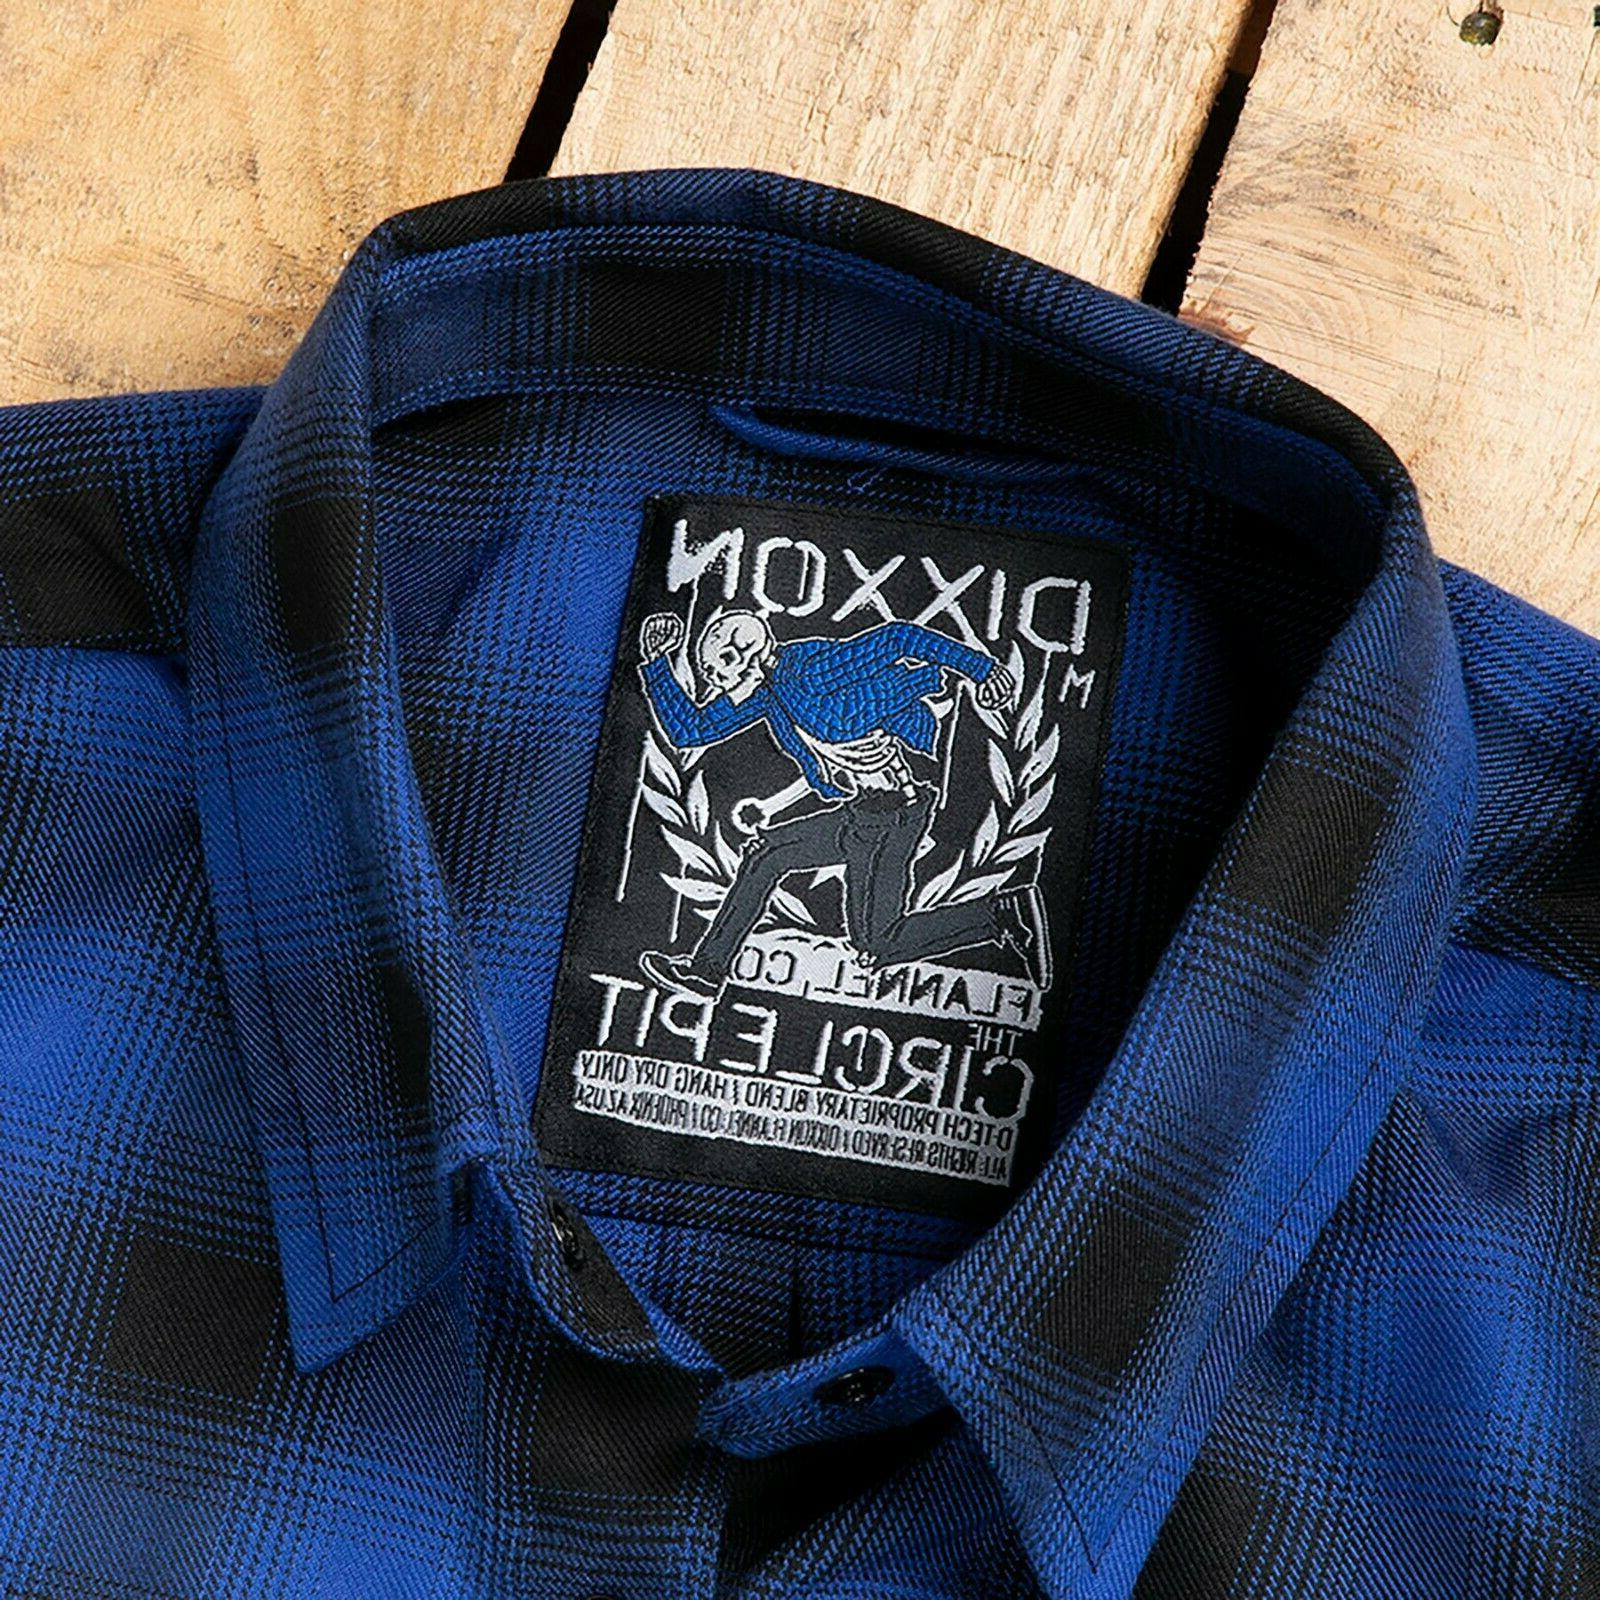 3xl circle pit mens flannel sold out